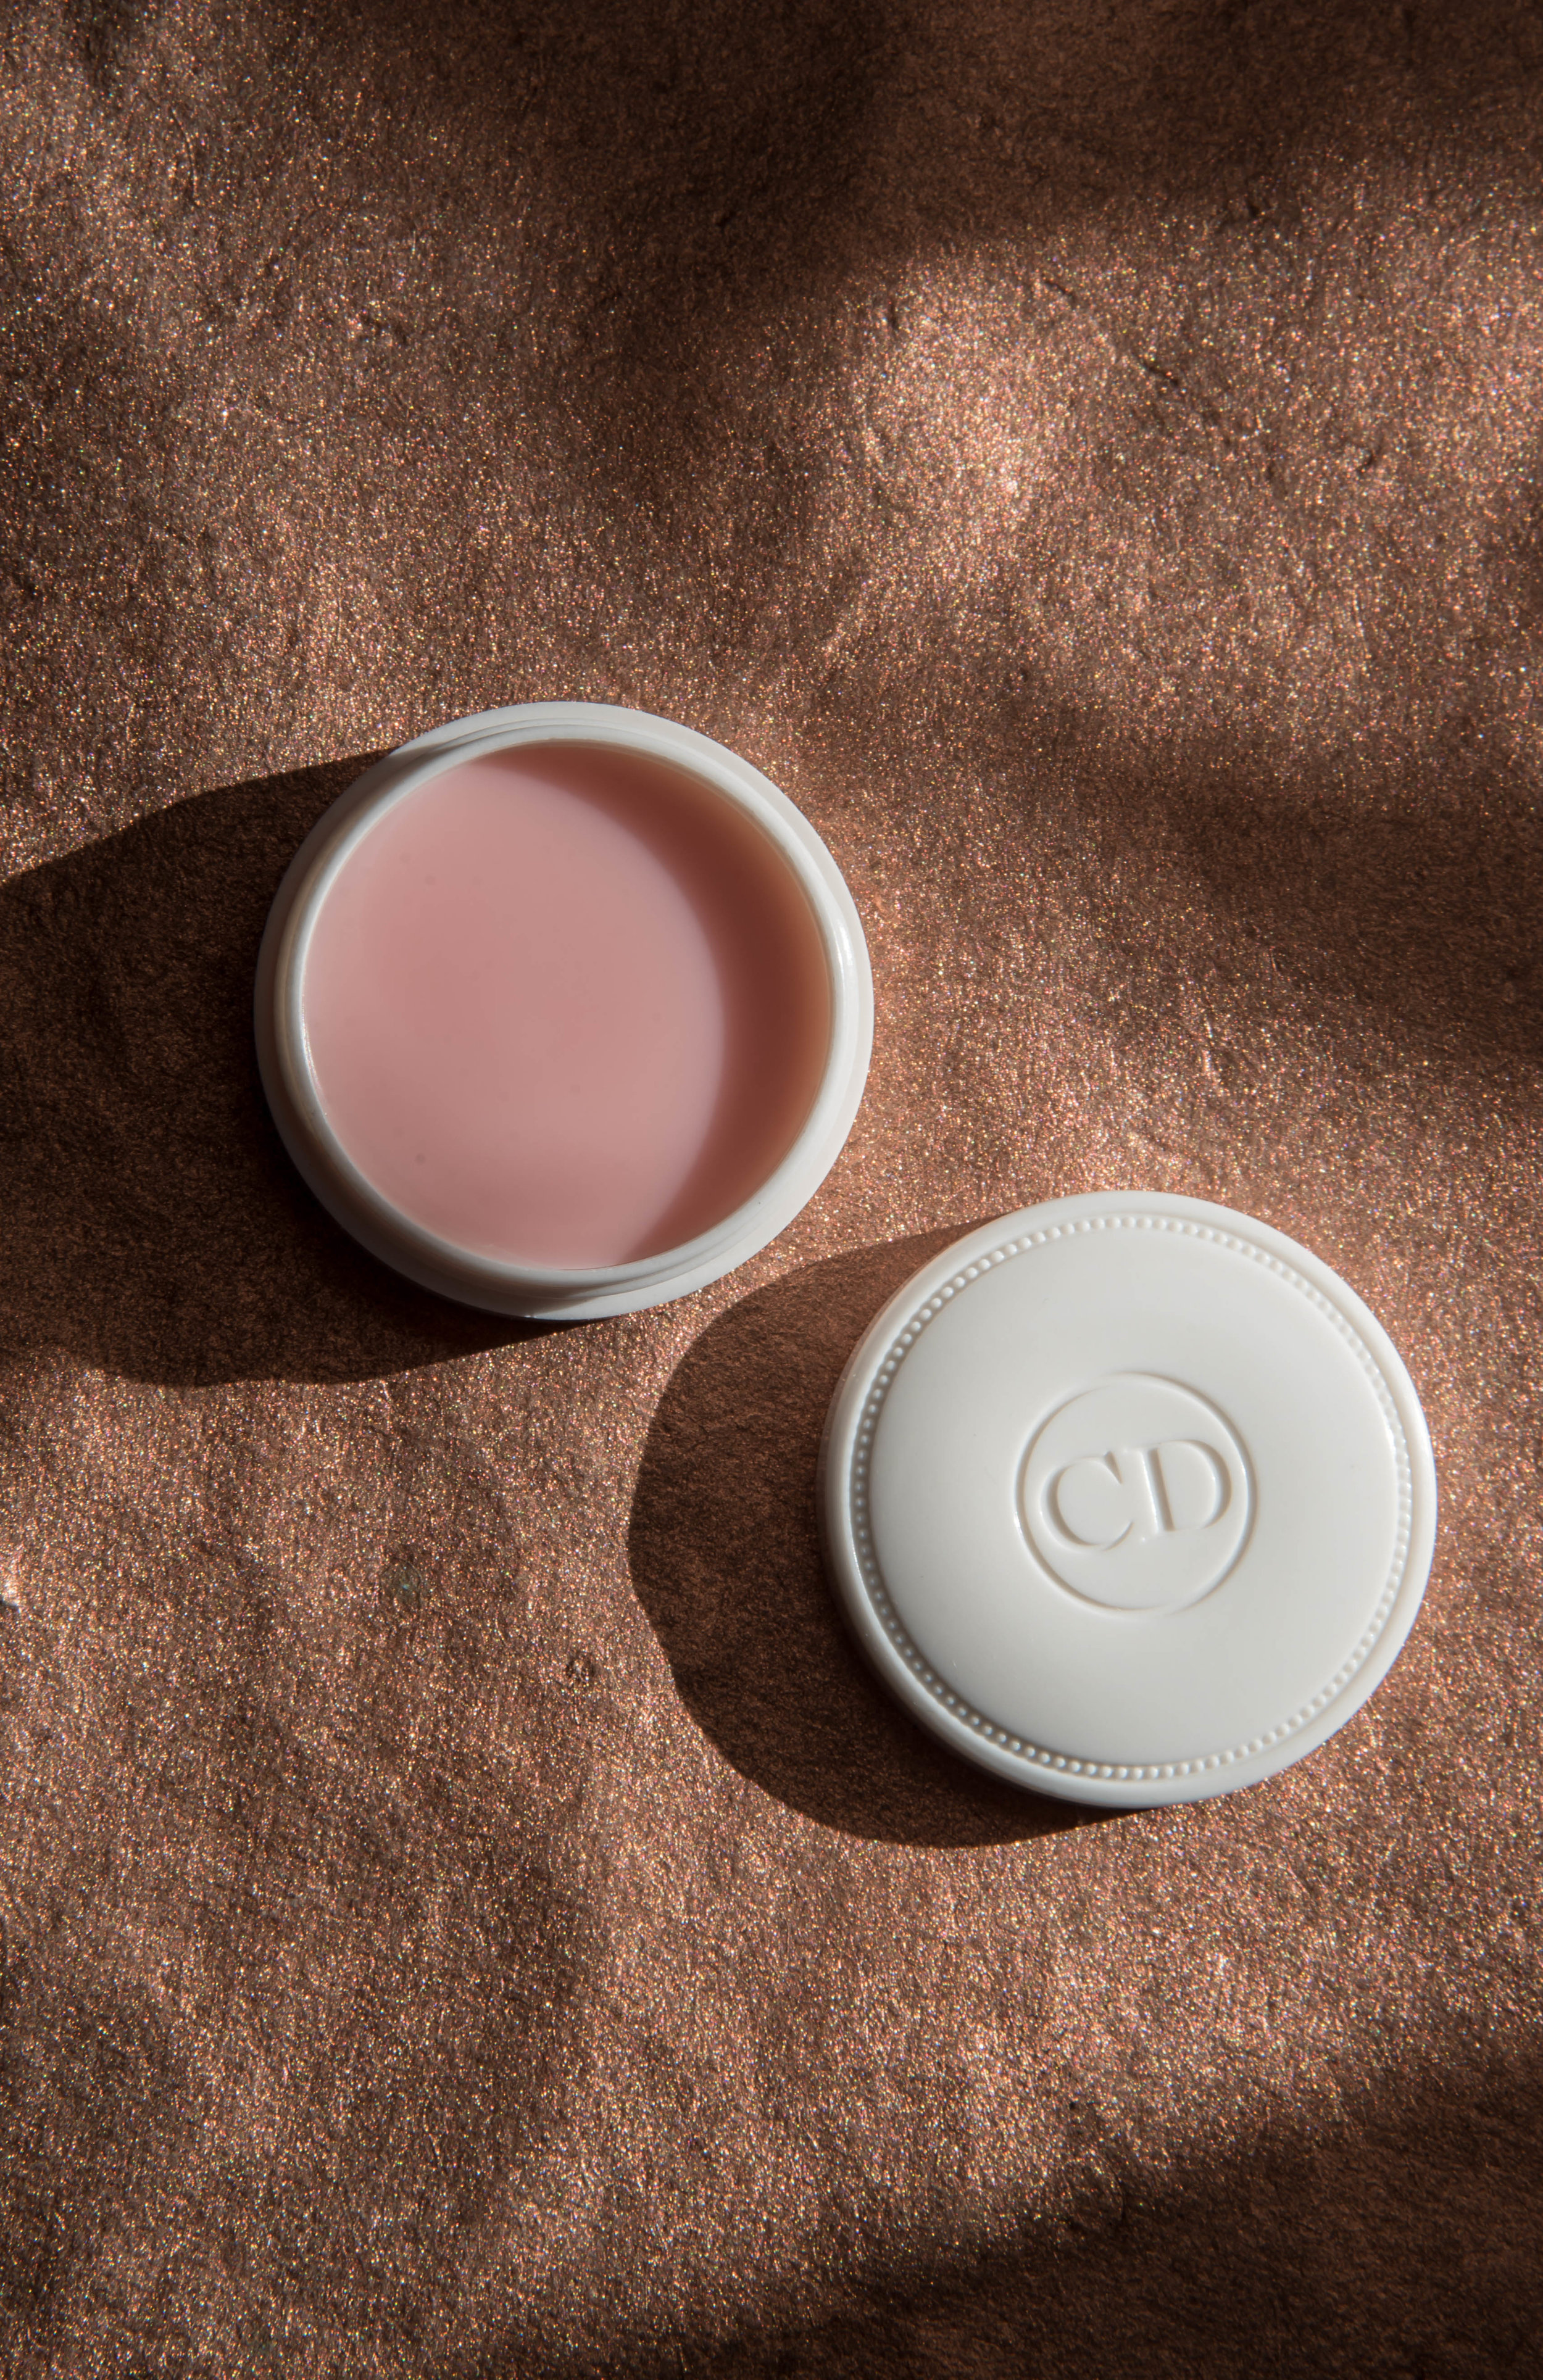 ROSE& IVY Journal Keep Lips Hydrated with Dior's Crème de Rose